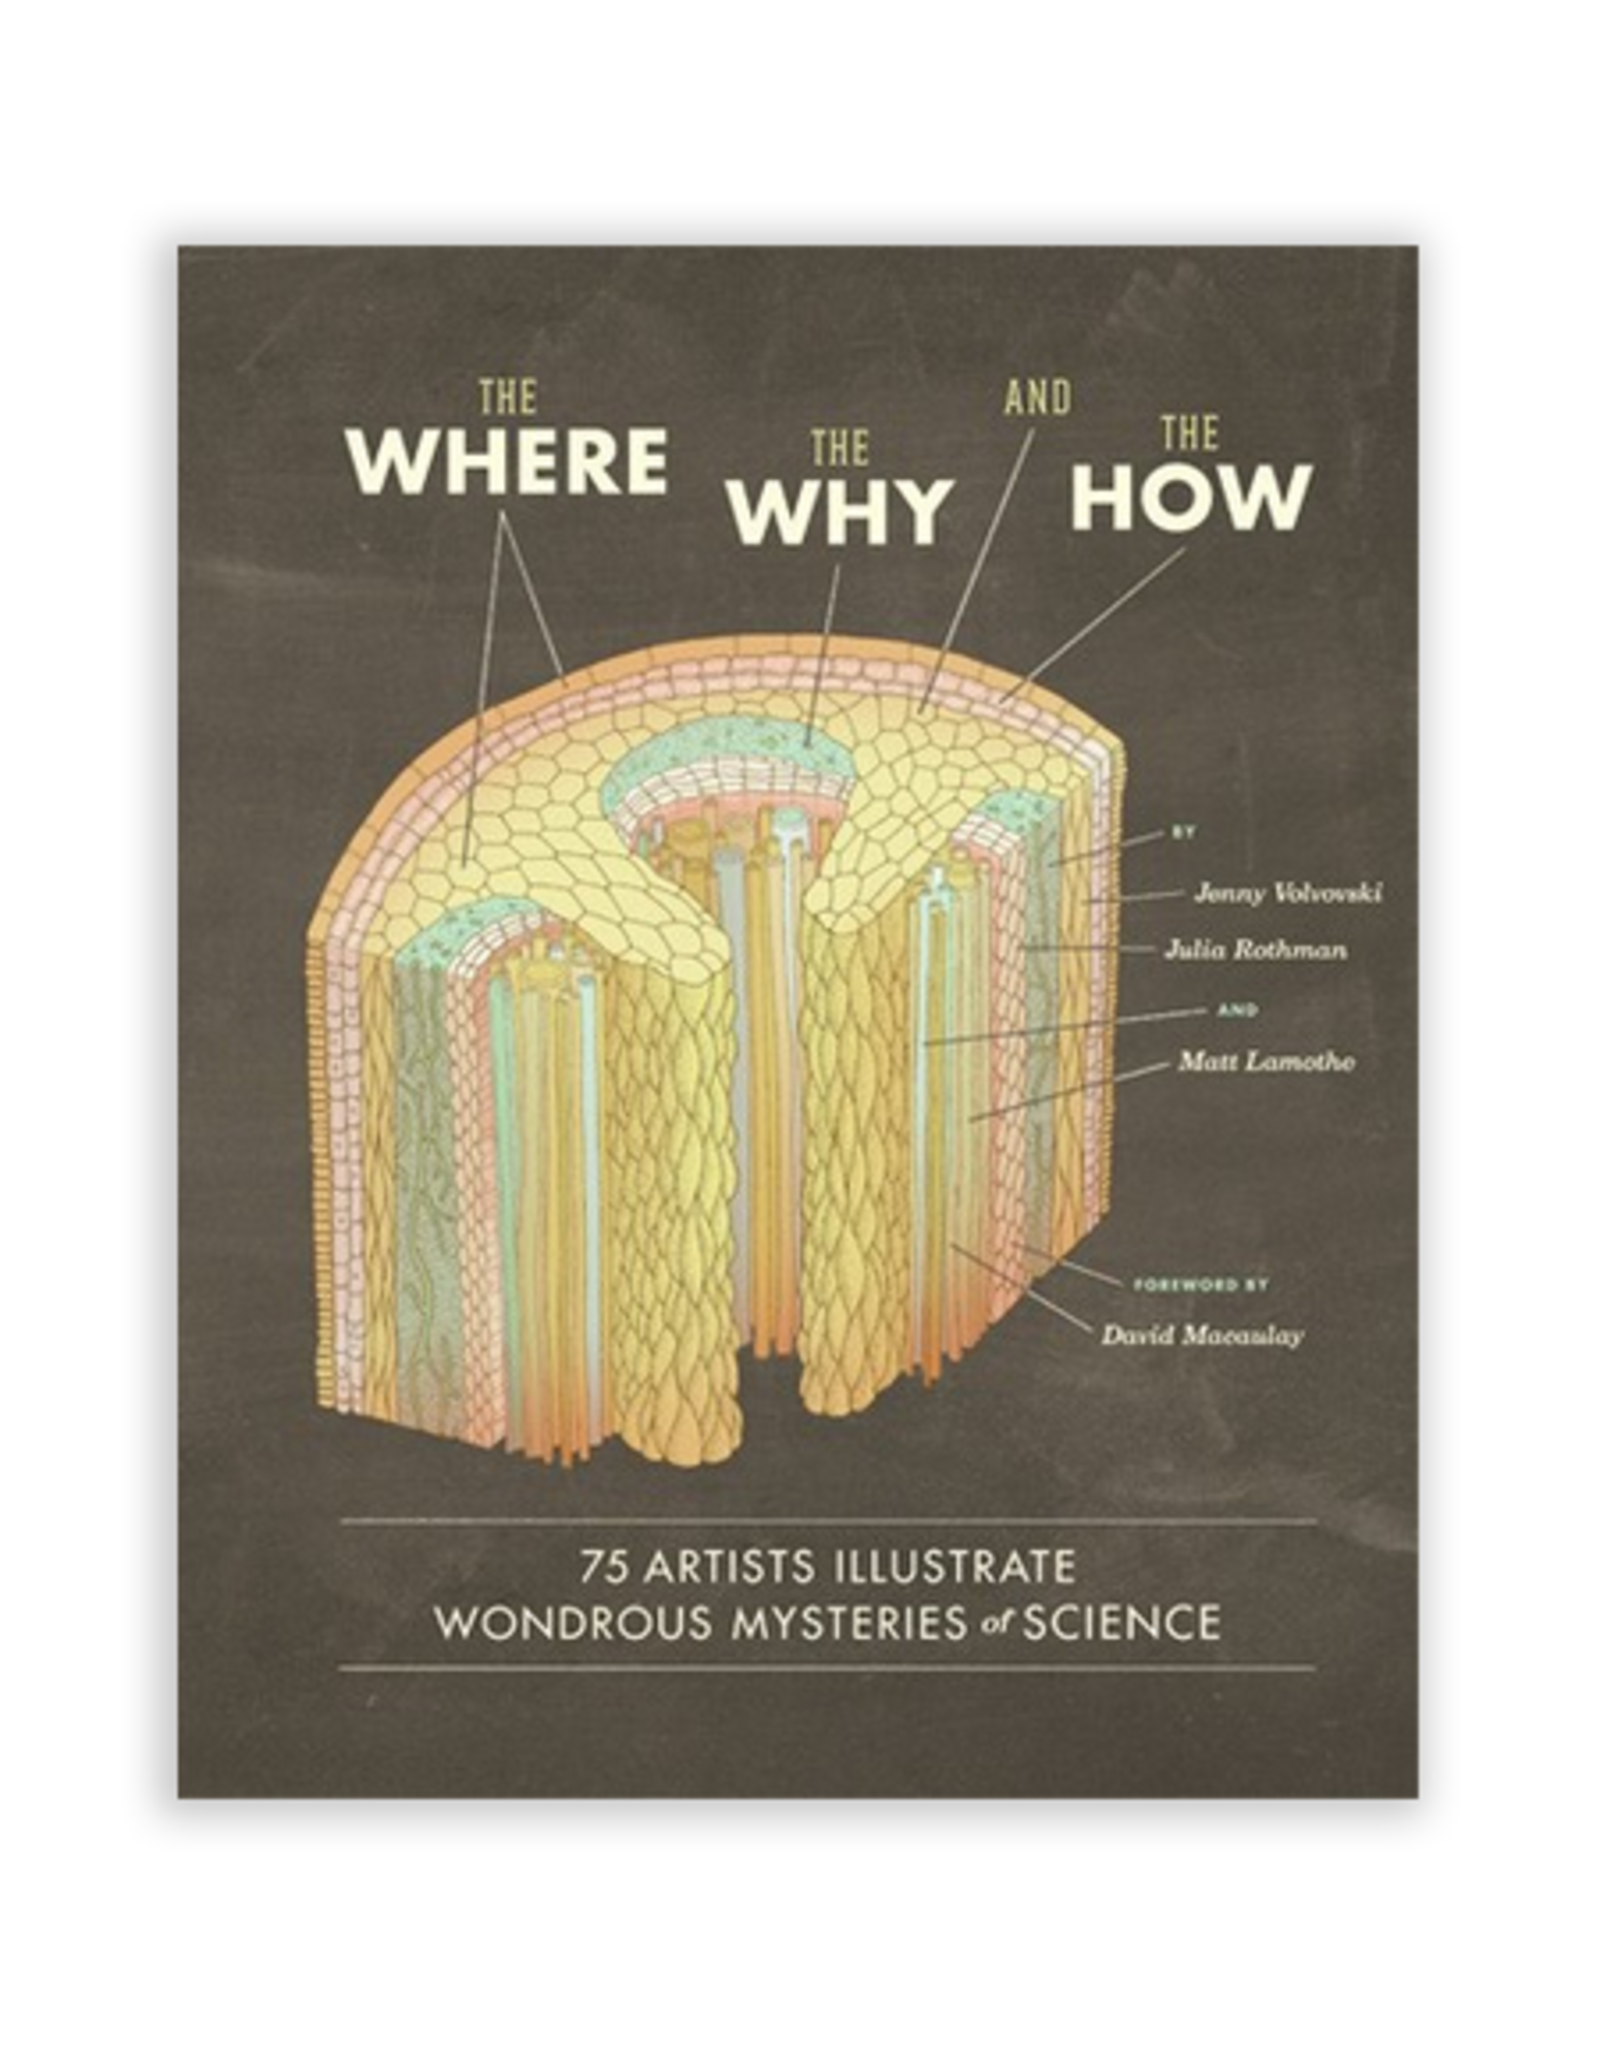 The Where, The Why and The How - 75 Artists Illustrate Wondrous Mysteries of Science